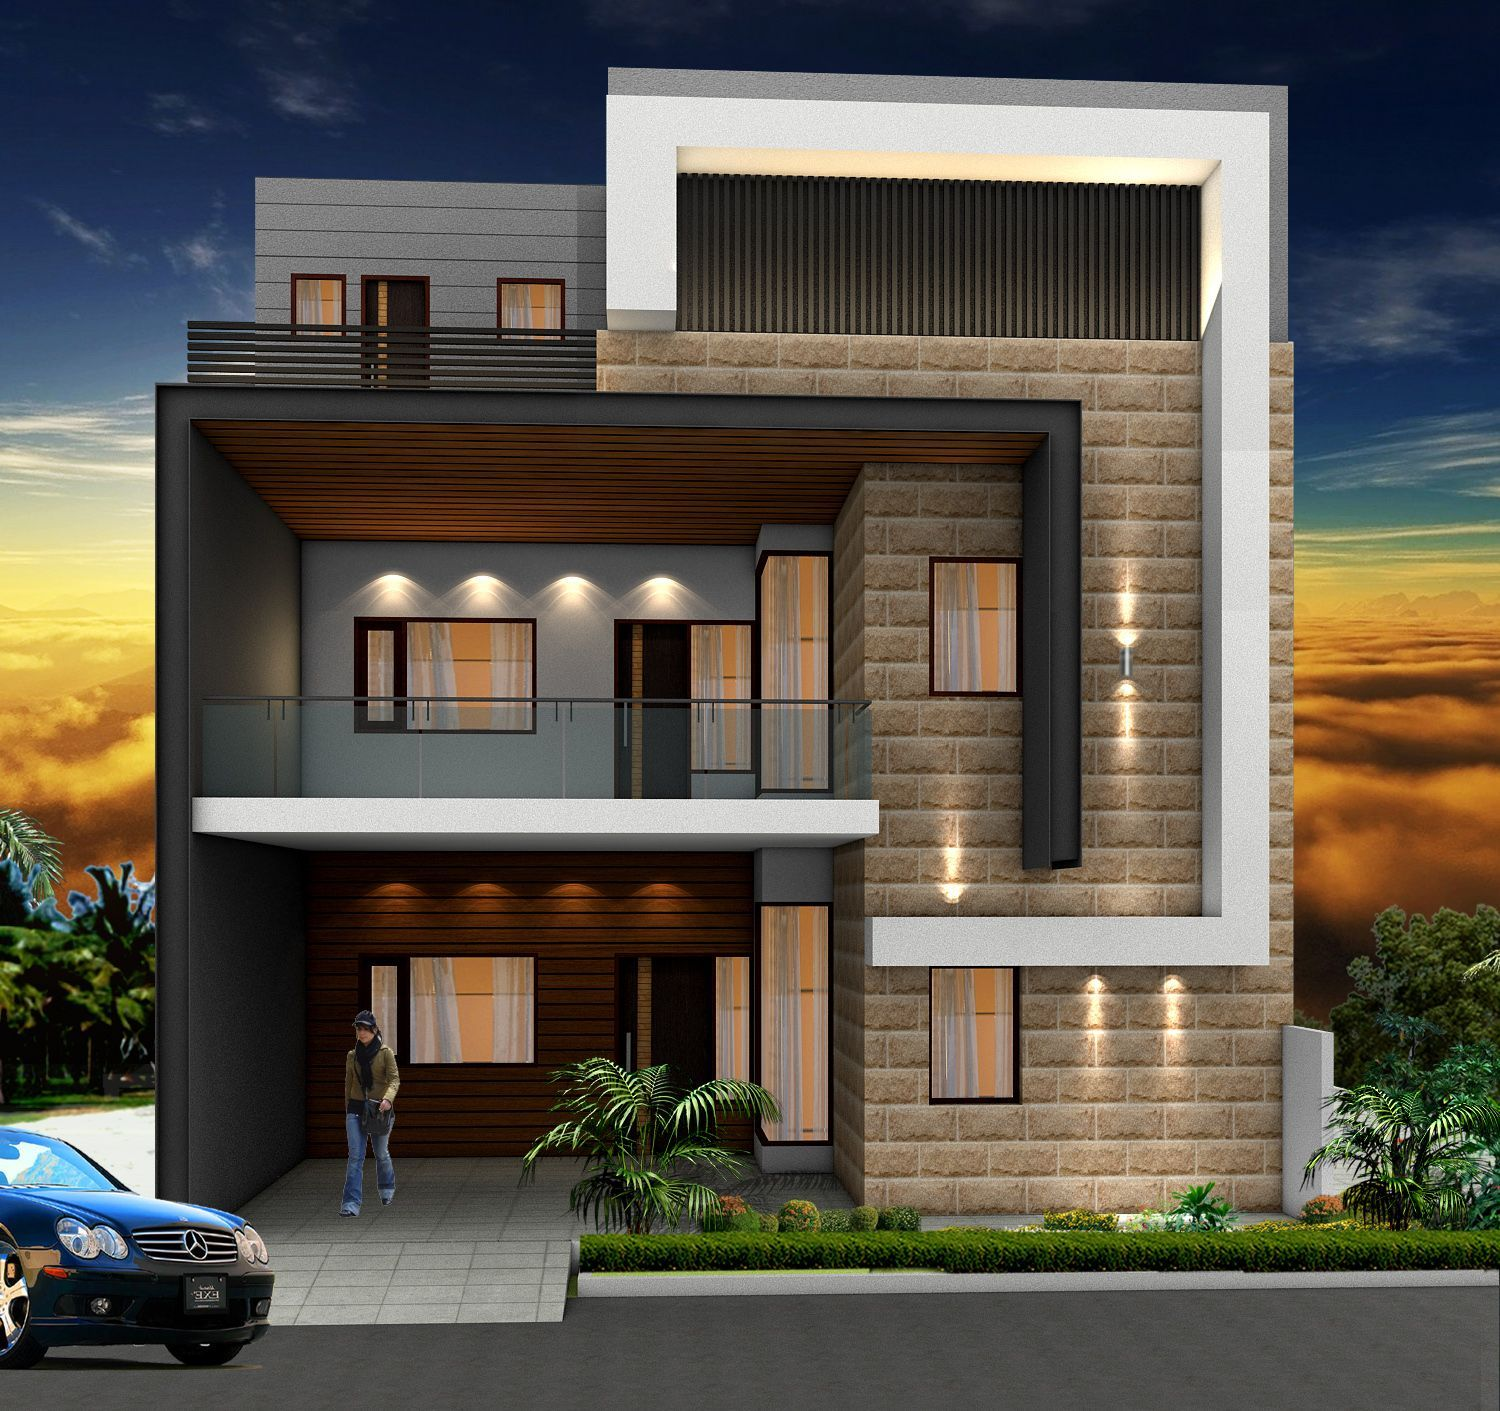 Independent house   House front design, Small house